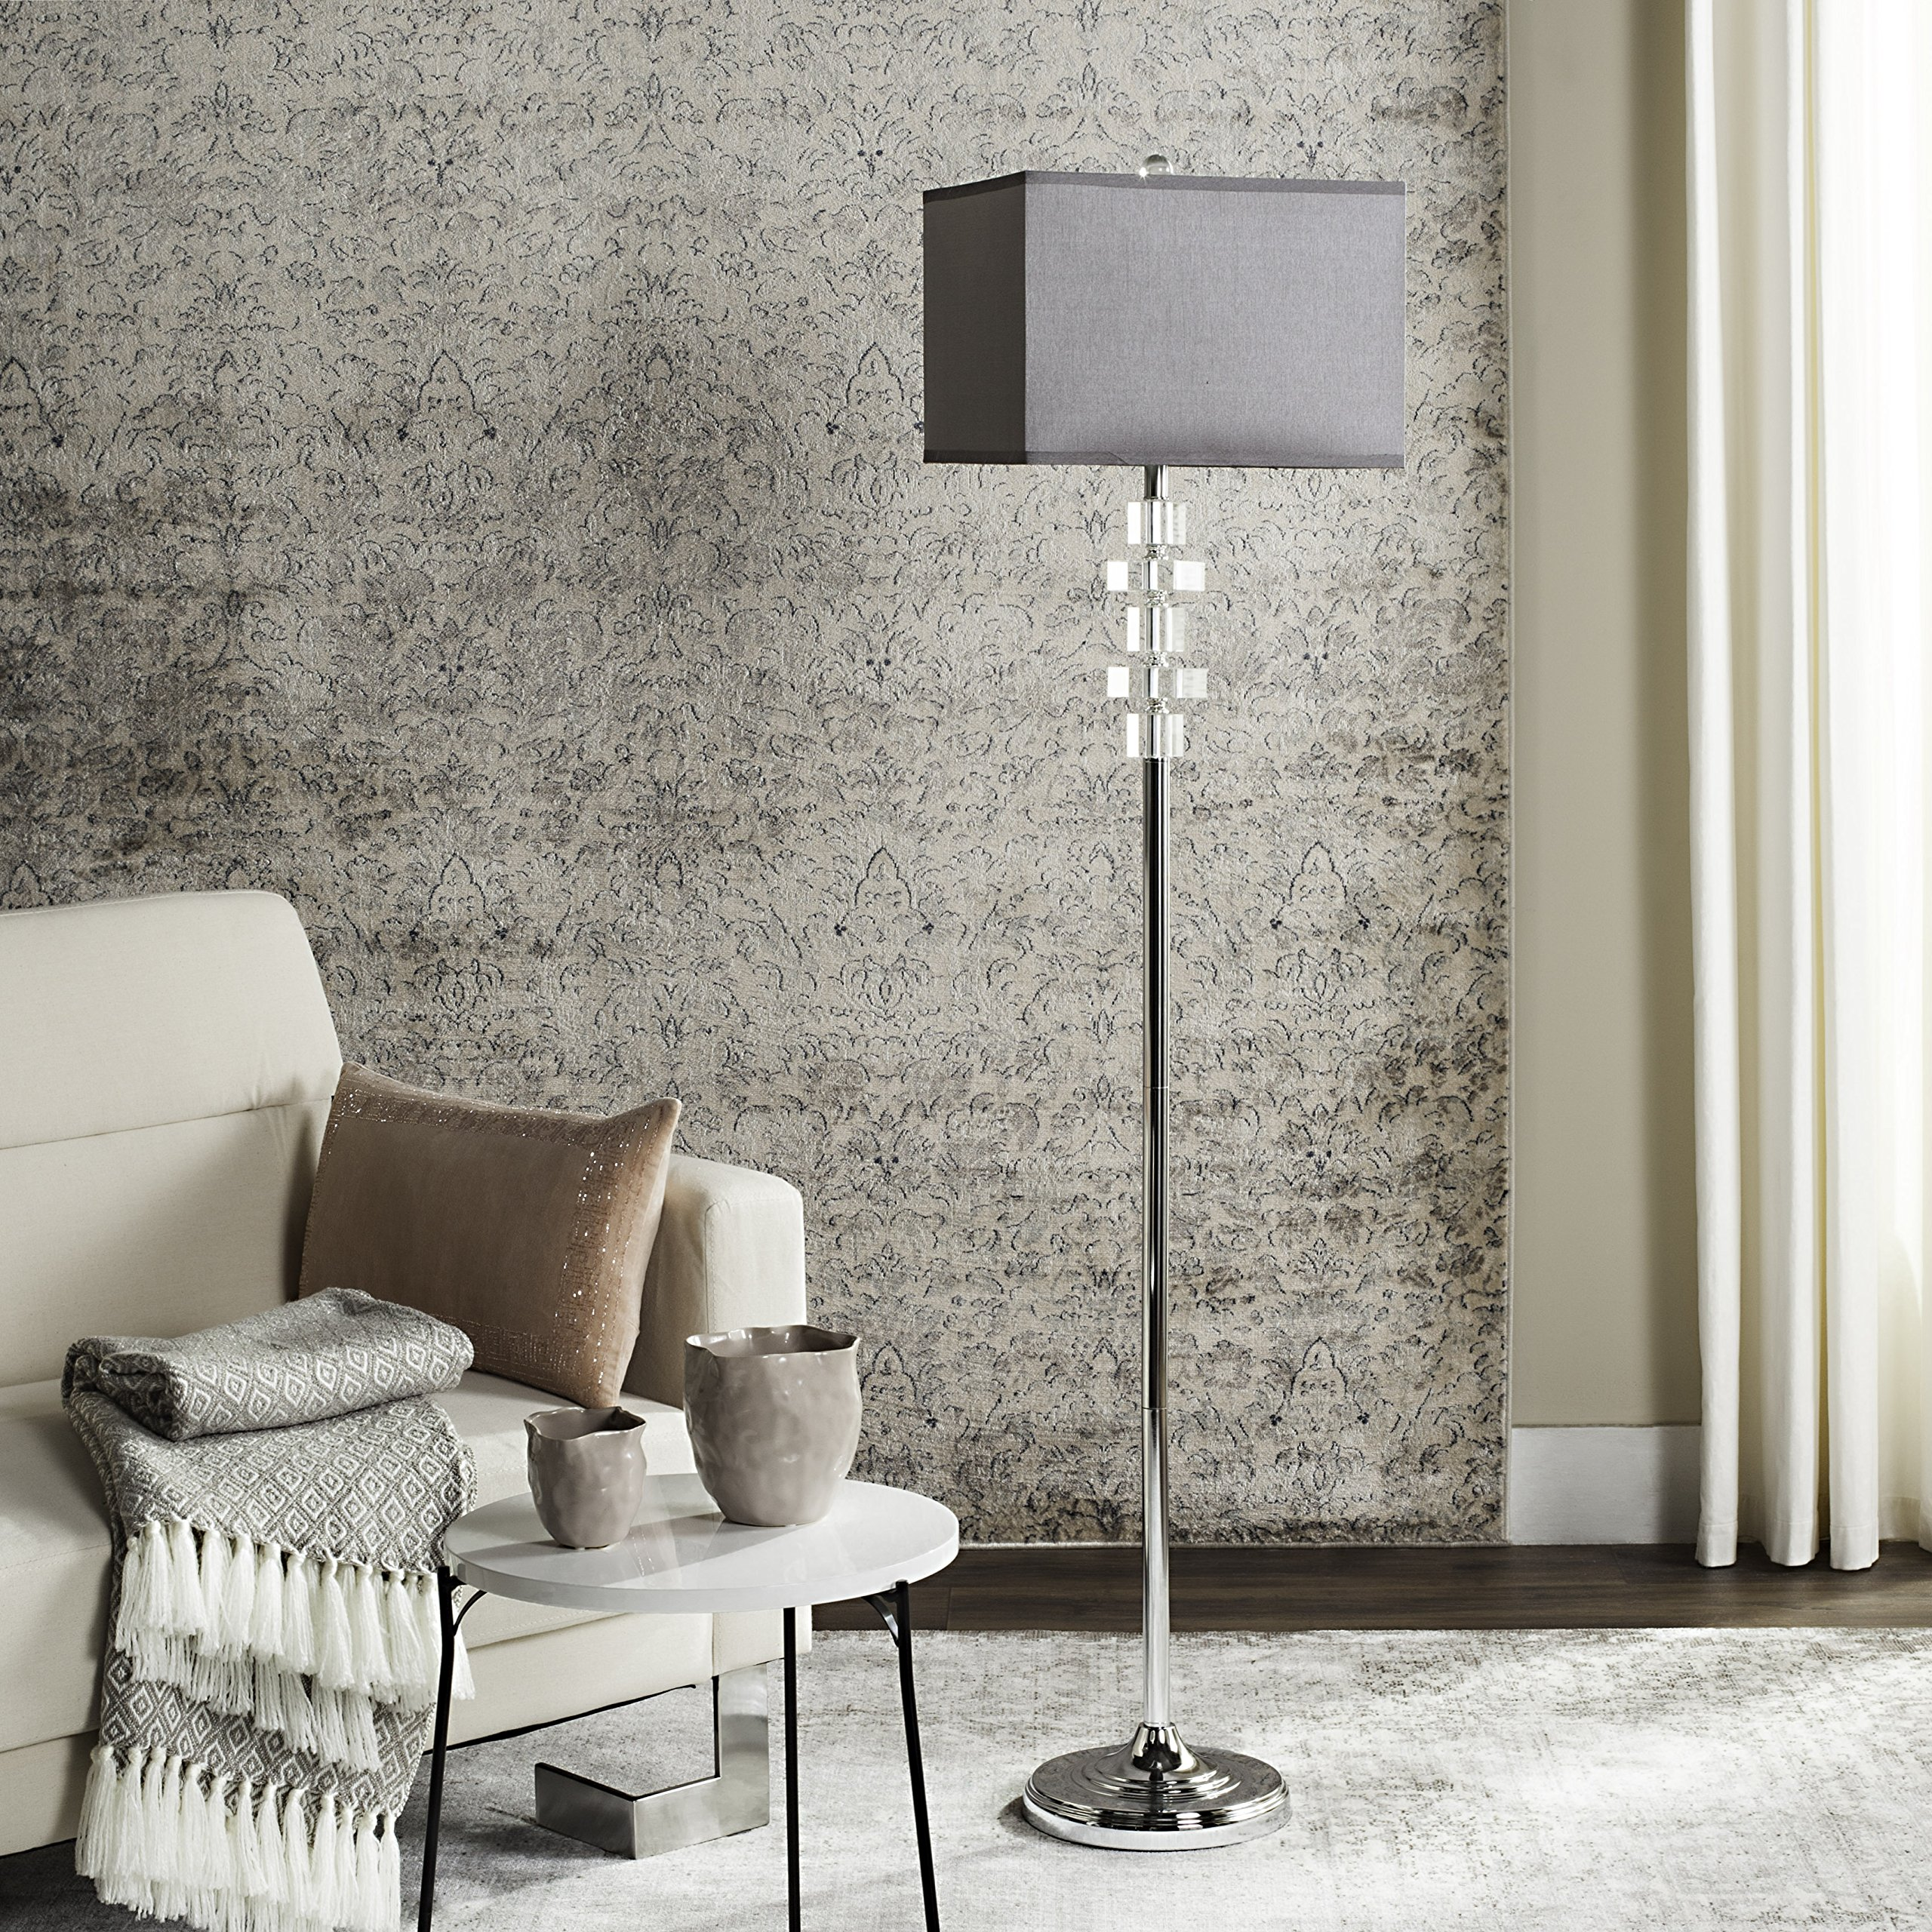 Safavieh Lighting Collection Times Square Clear 60.25-inch Floor Lamp by Safavieh